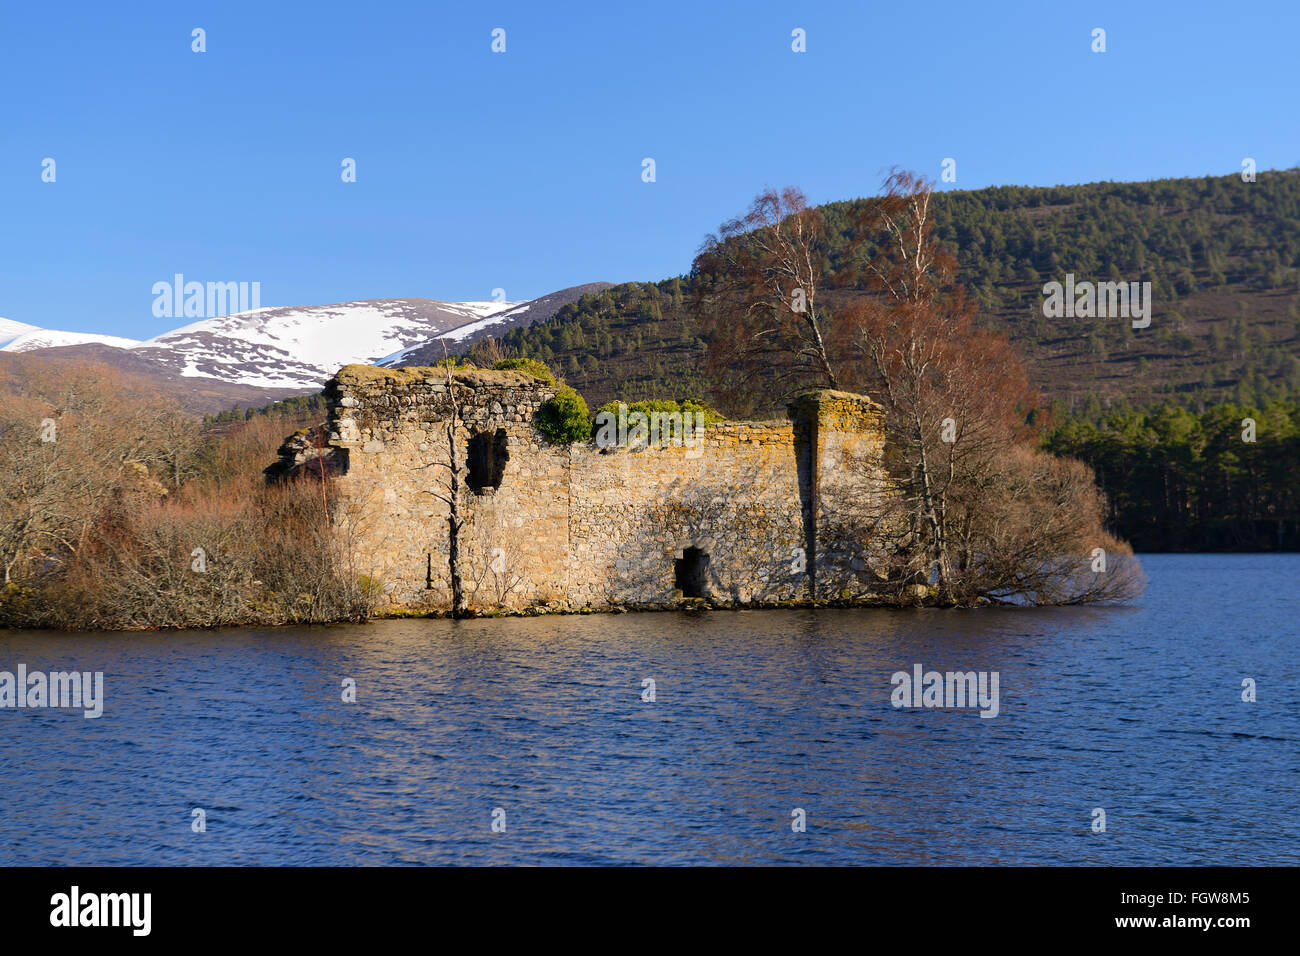 Castle ruins on island on Loch an Eilein, Rothiemurchus Estate, Scottish Highlands, UK - Stock Image